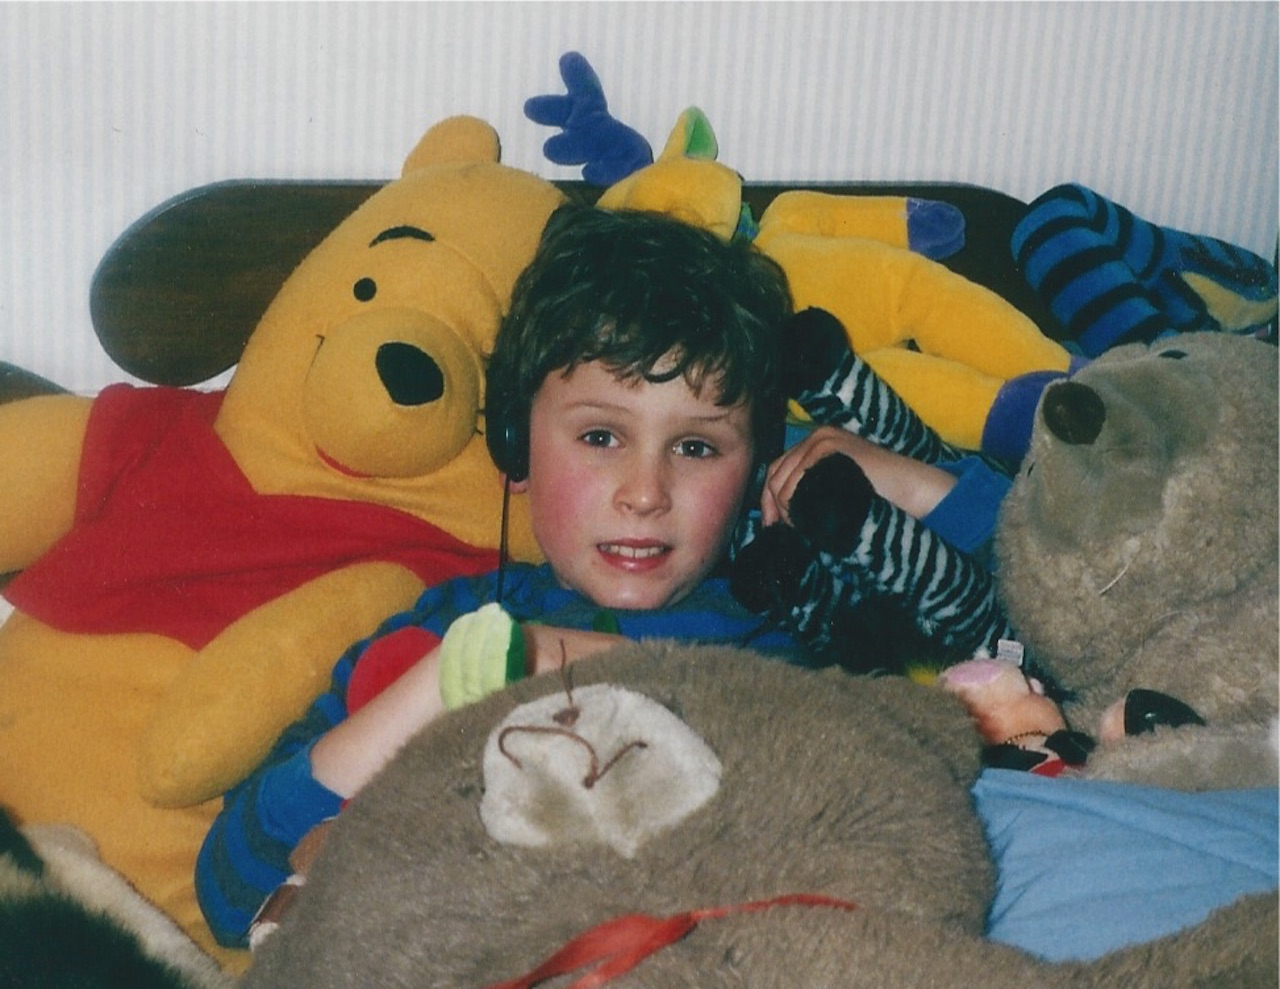 dan with stuffed animals